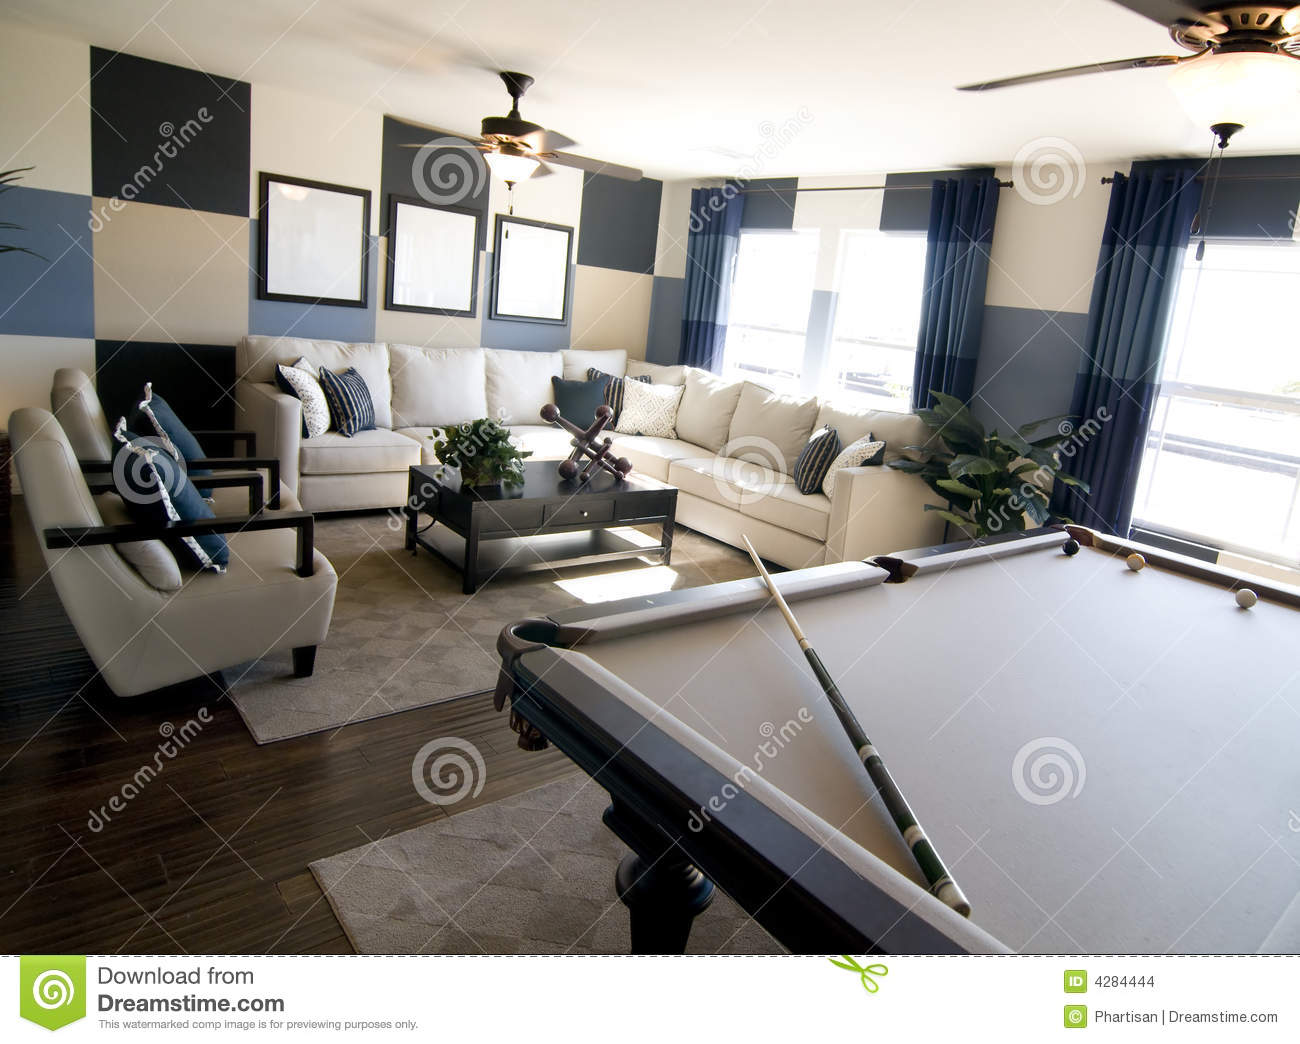 Luxury Game Room Interior Design Stock Photo Image Of Decorate